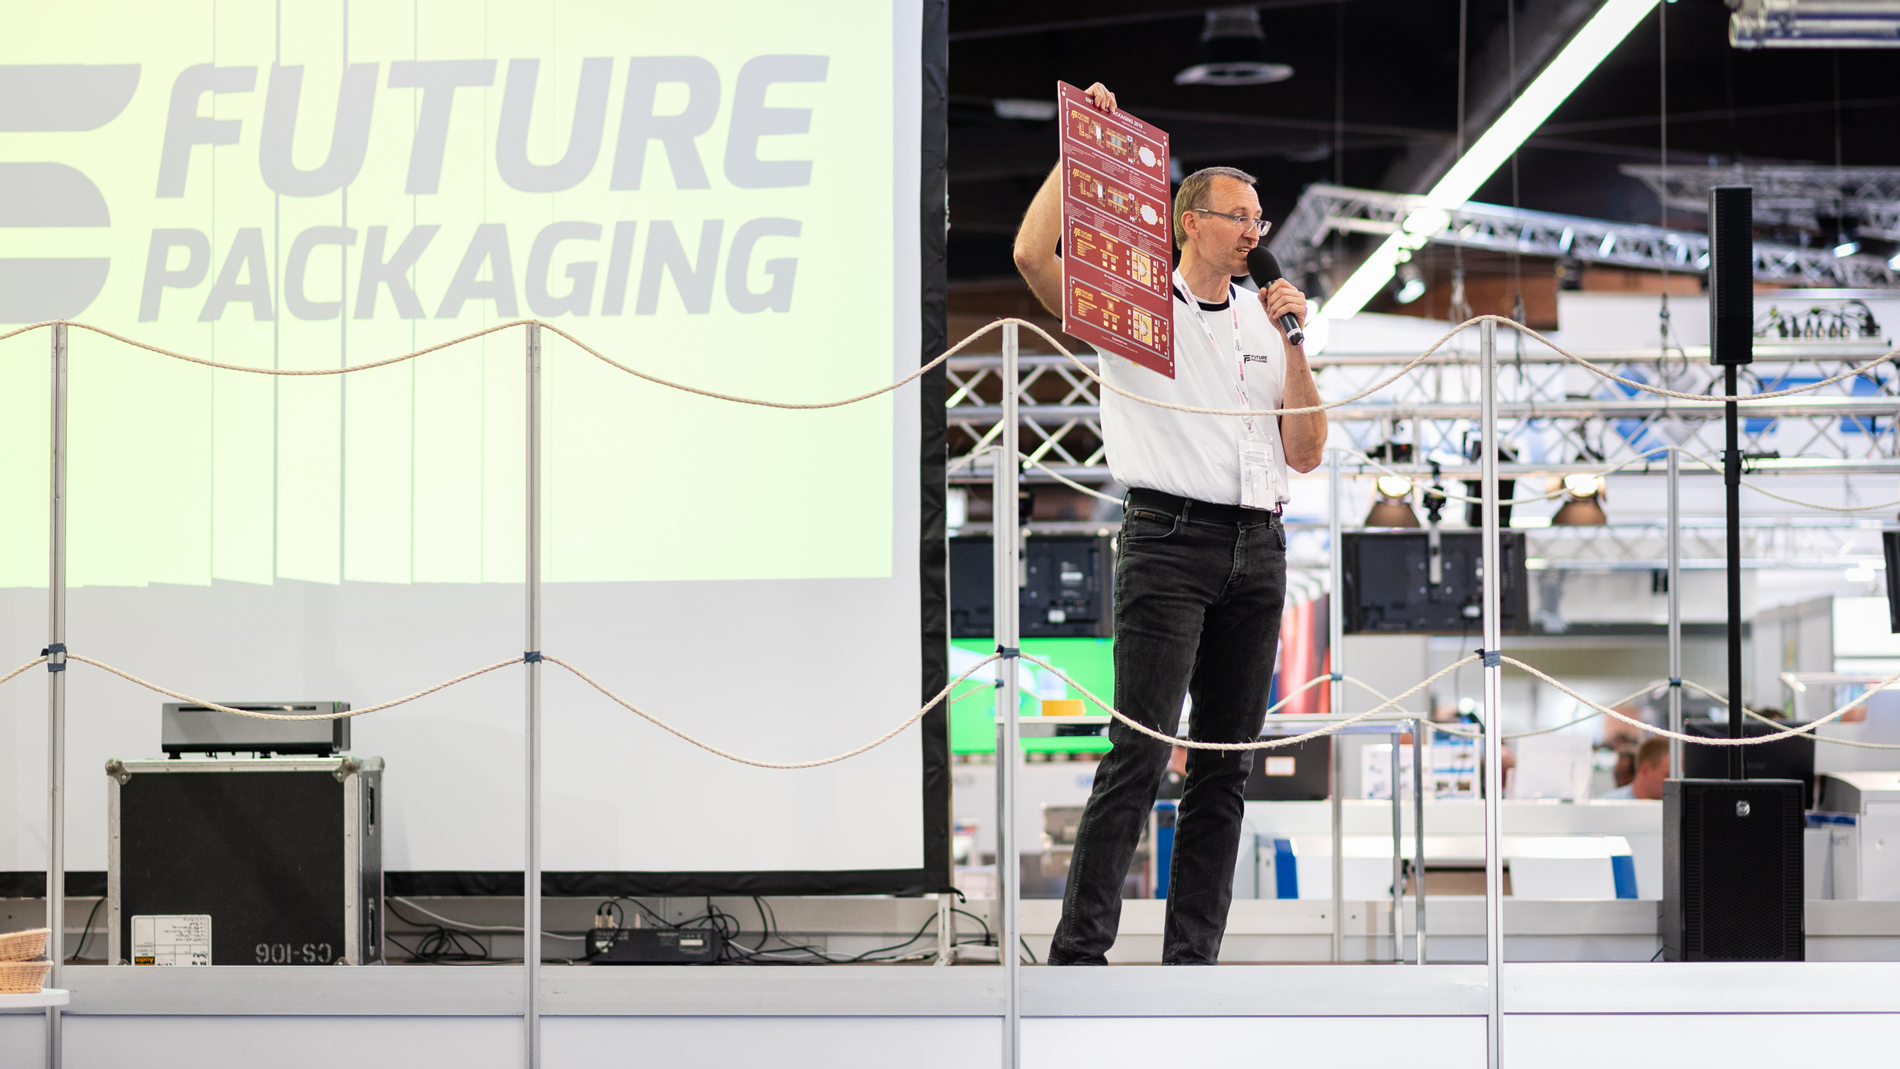 Impressions to 'Future Packaging' production line